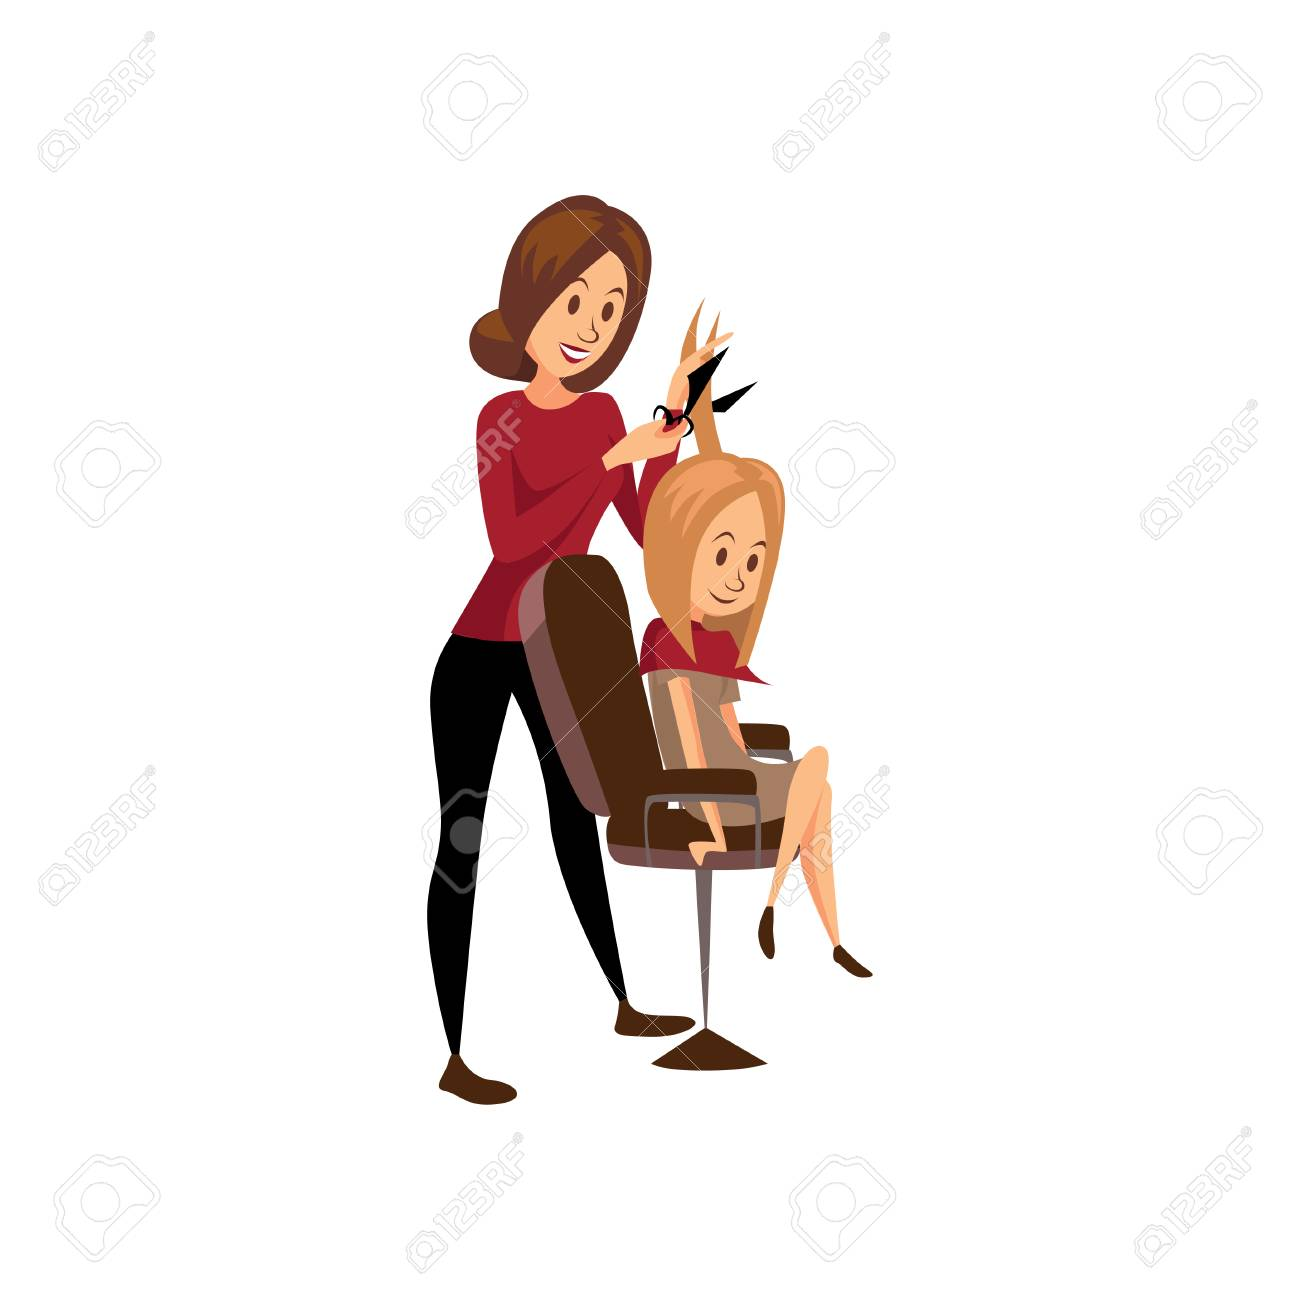 Female hairdresser cutting hair of young woman, professional hair stylist at workplace cartoon vector Illustration - 91179878